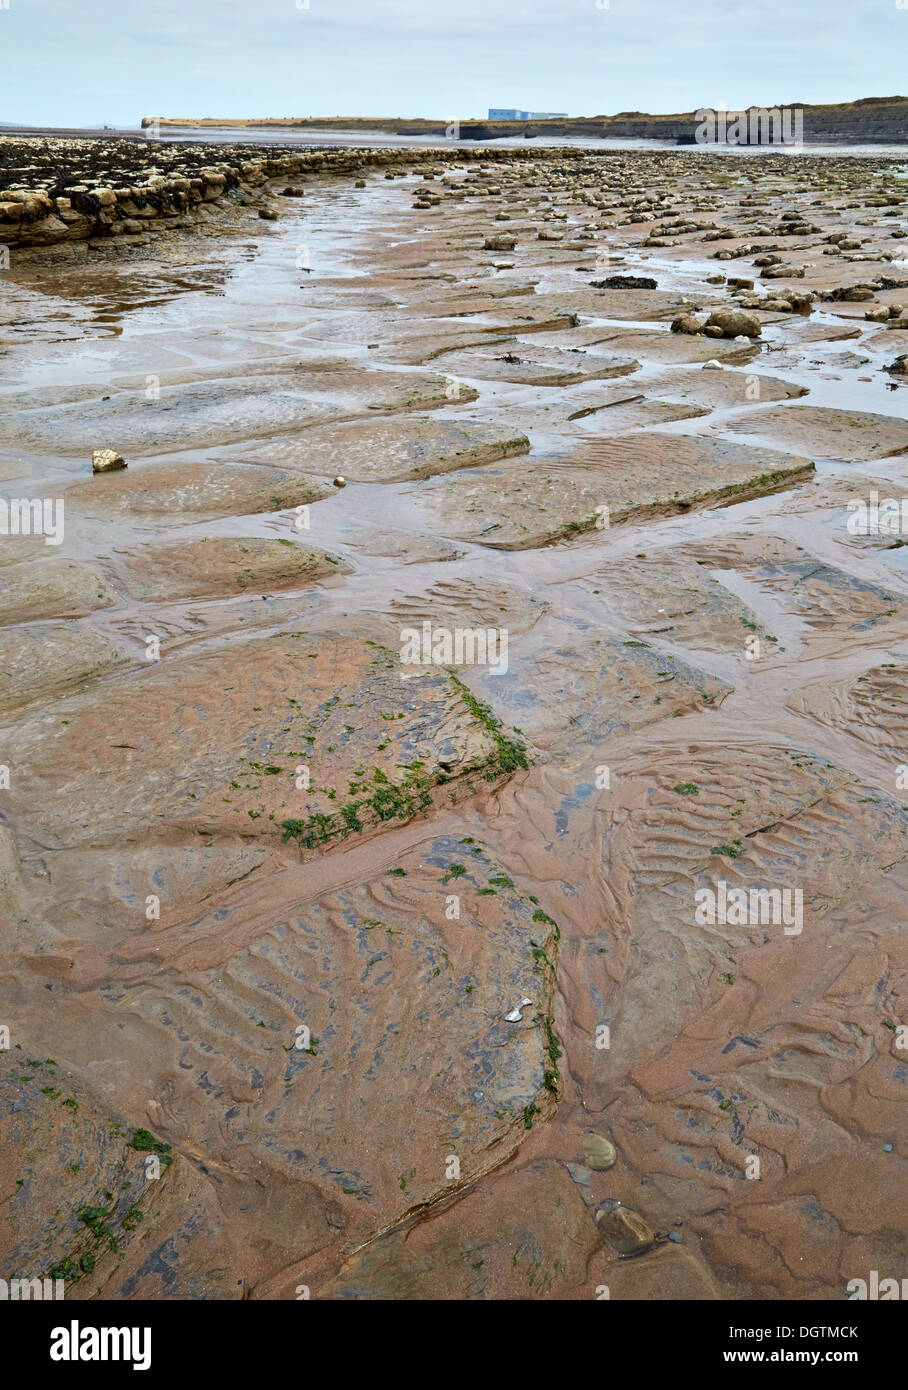 Natural paving in Lias limestone beds near Hinkley Point nuclear power station on the Somerset shore of the Bristol Channel UK - Stock Image